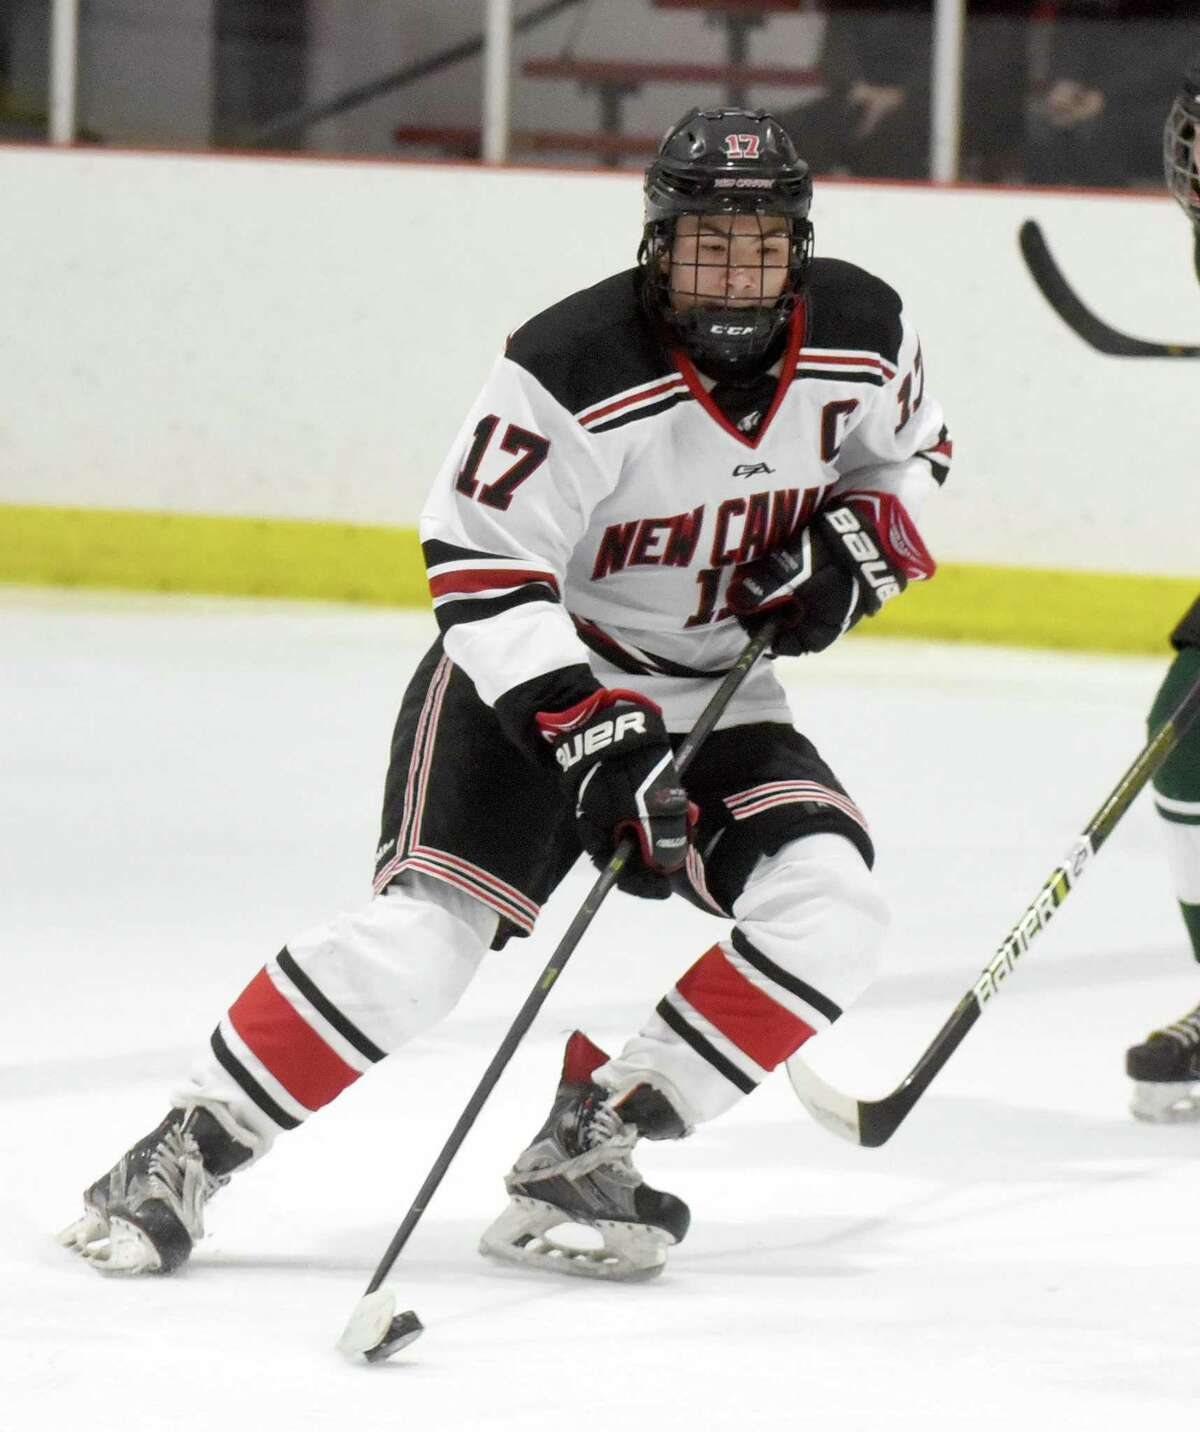 New Canaan's Justin Wietfeldt (17) carries the puck into the zone during the Rams' boys ice hockey game against Northwest Catholic on at the Darien Ice House on Saturday, Jan. 11, 2020.